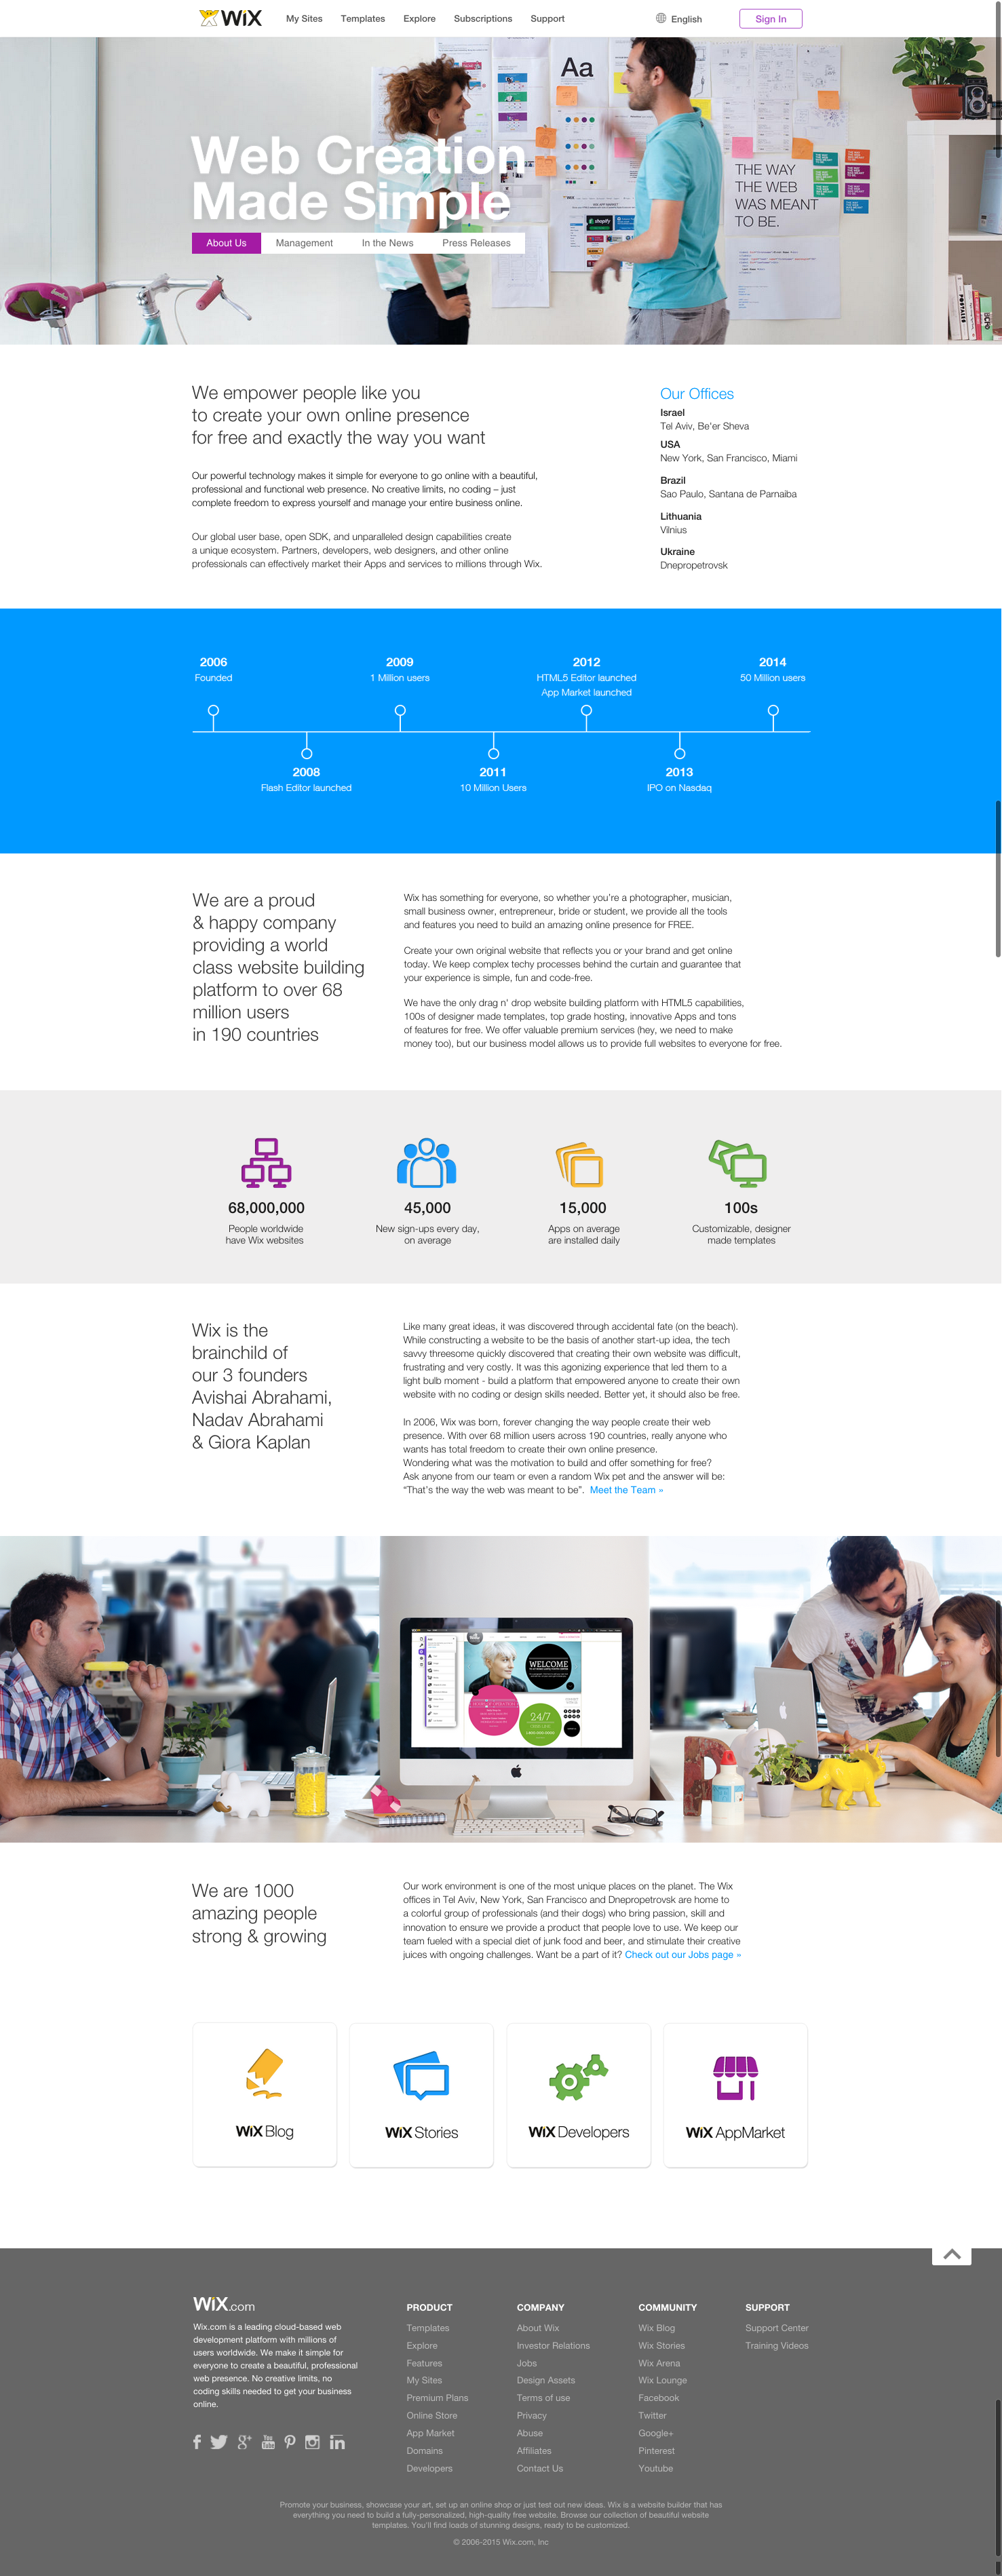 Wix about us page design 2015 about us webpage design pinterest wix about us page design 2015 pronofoot35fo Images